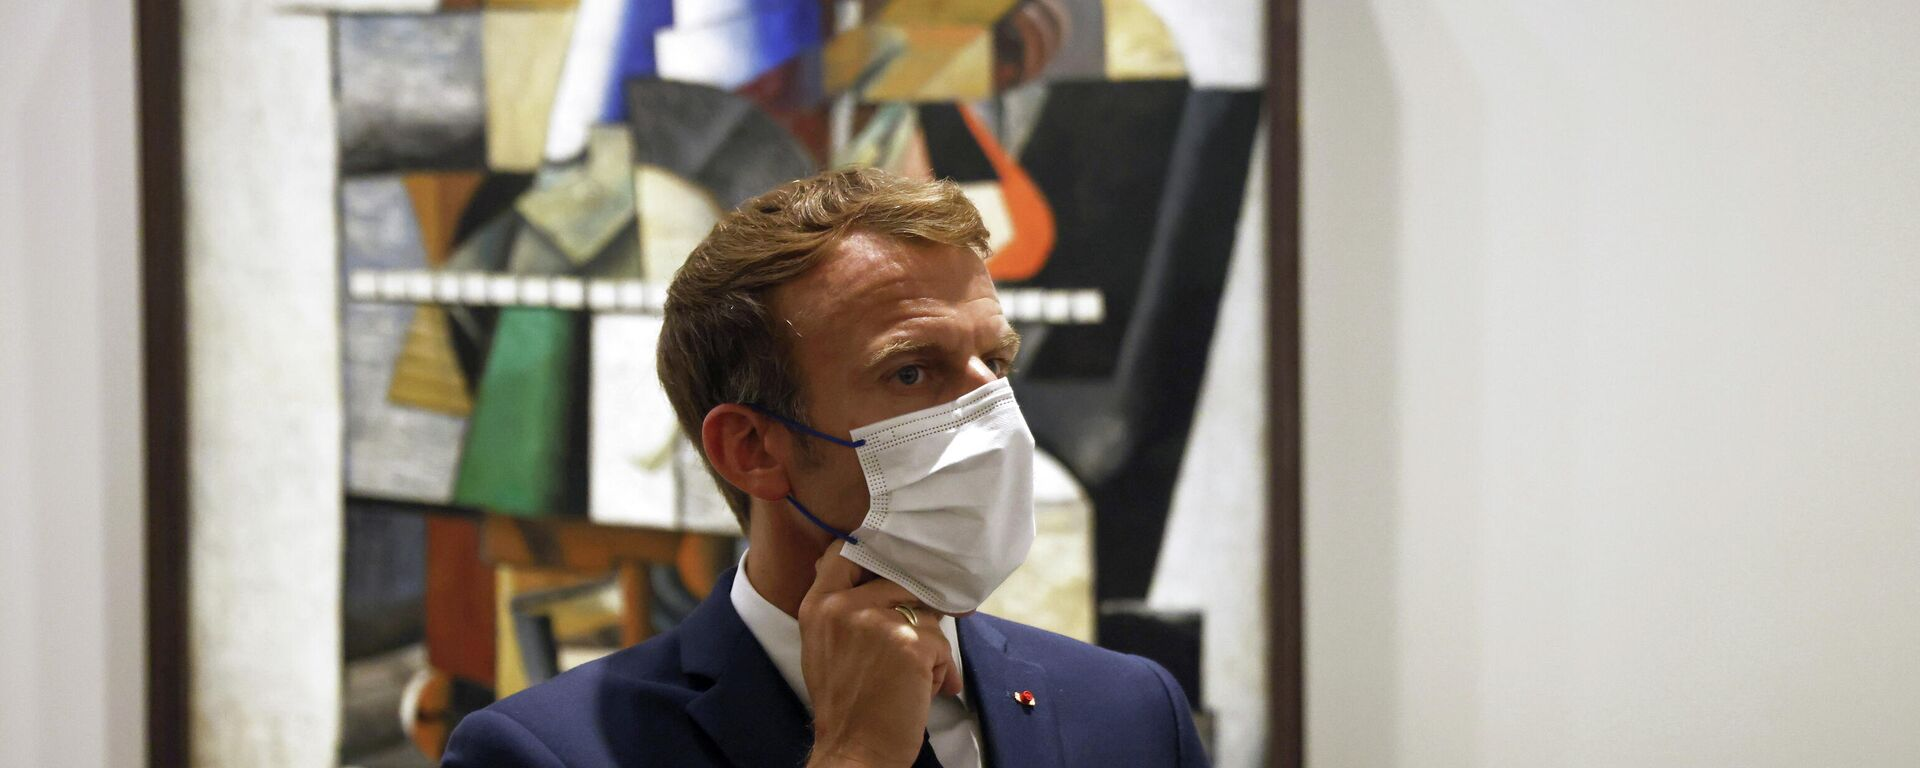 French President Emmanuel Macron visits the exhibition 'The Morozov Collection, Icons of Modern Art' at Foundation Louis Vuitton in Paris, France, September 21, 2021. - Sputnik International, 1920, 21.09.2021